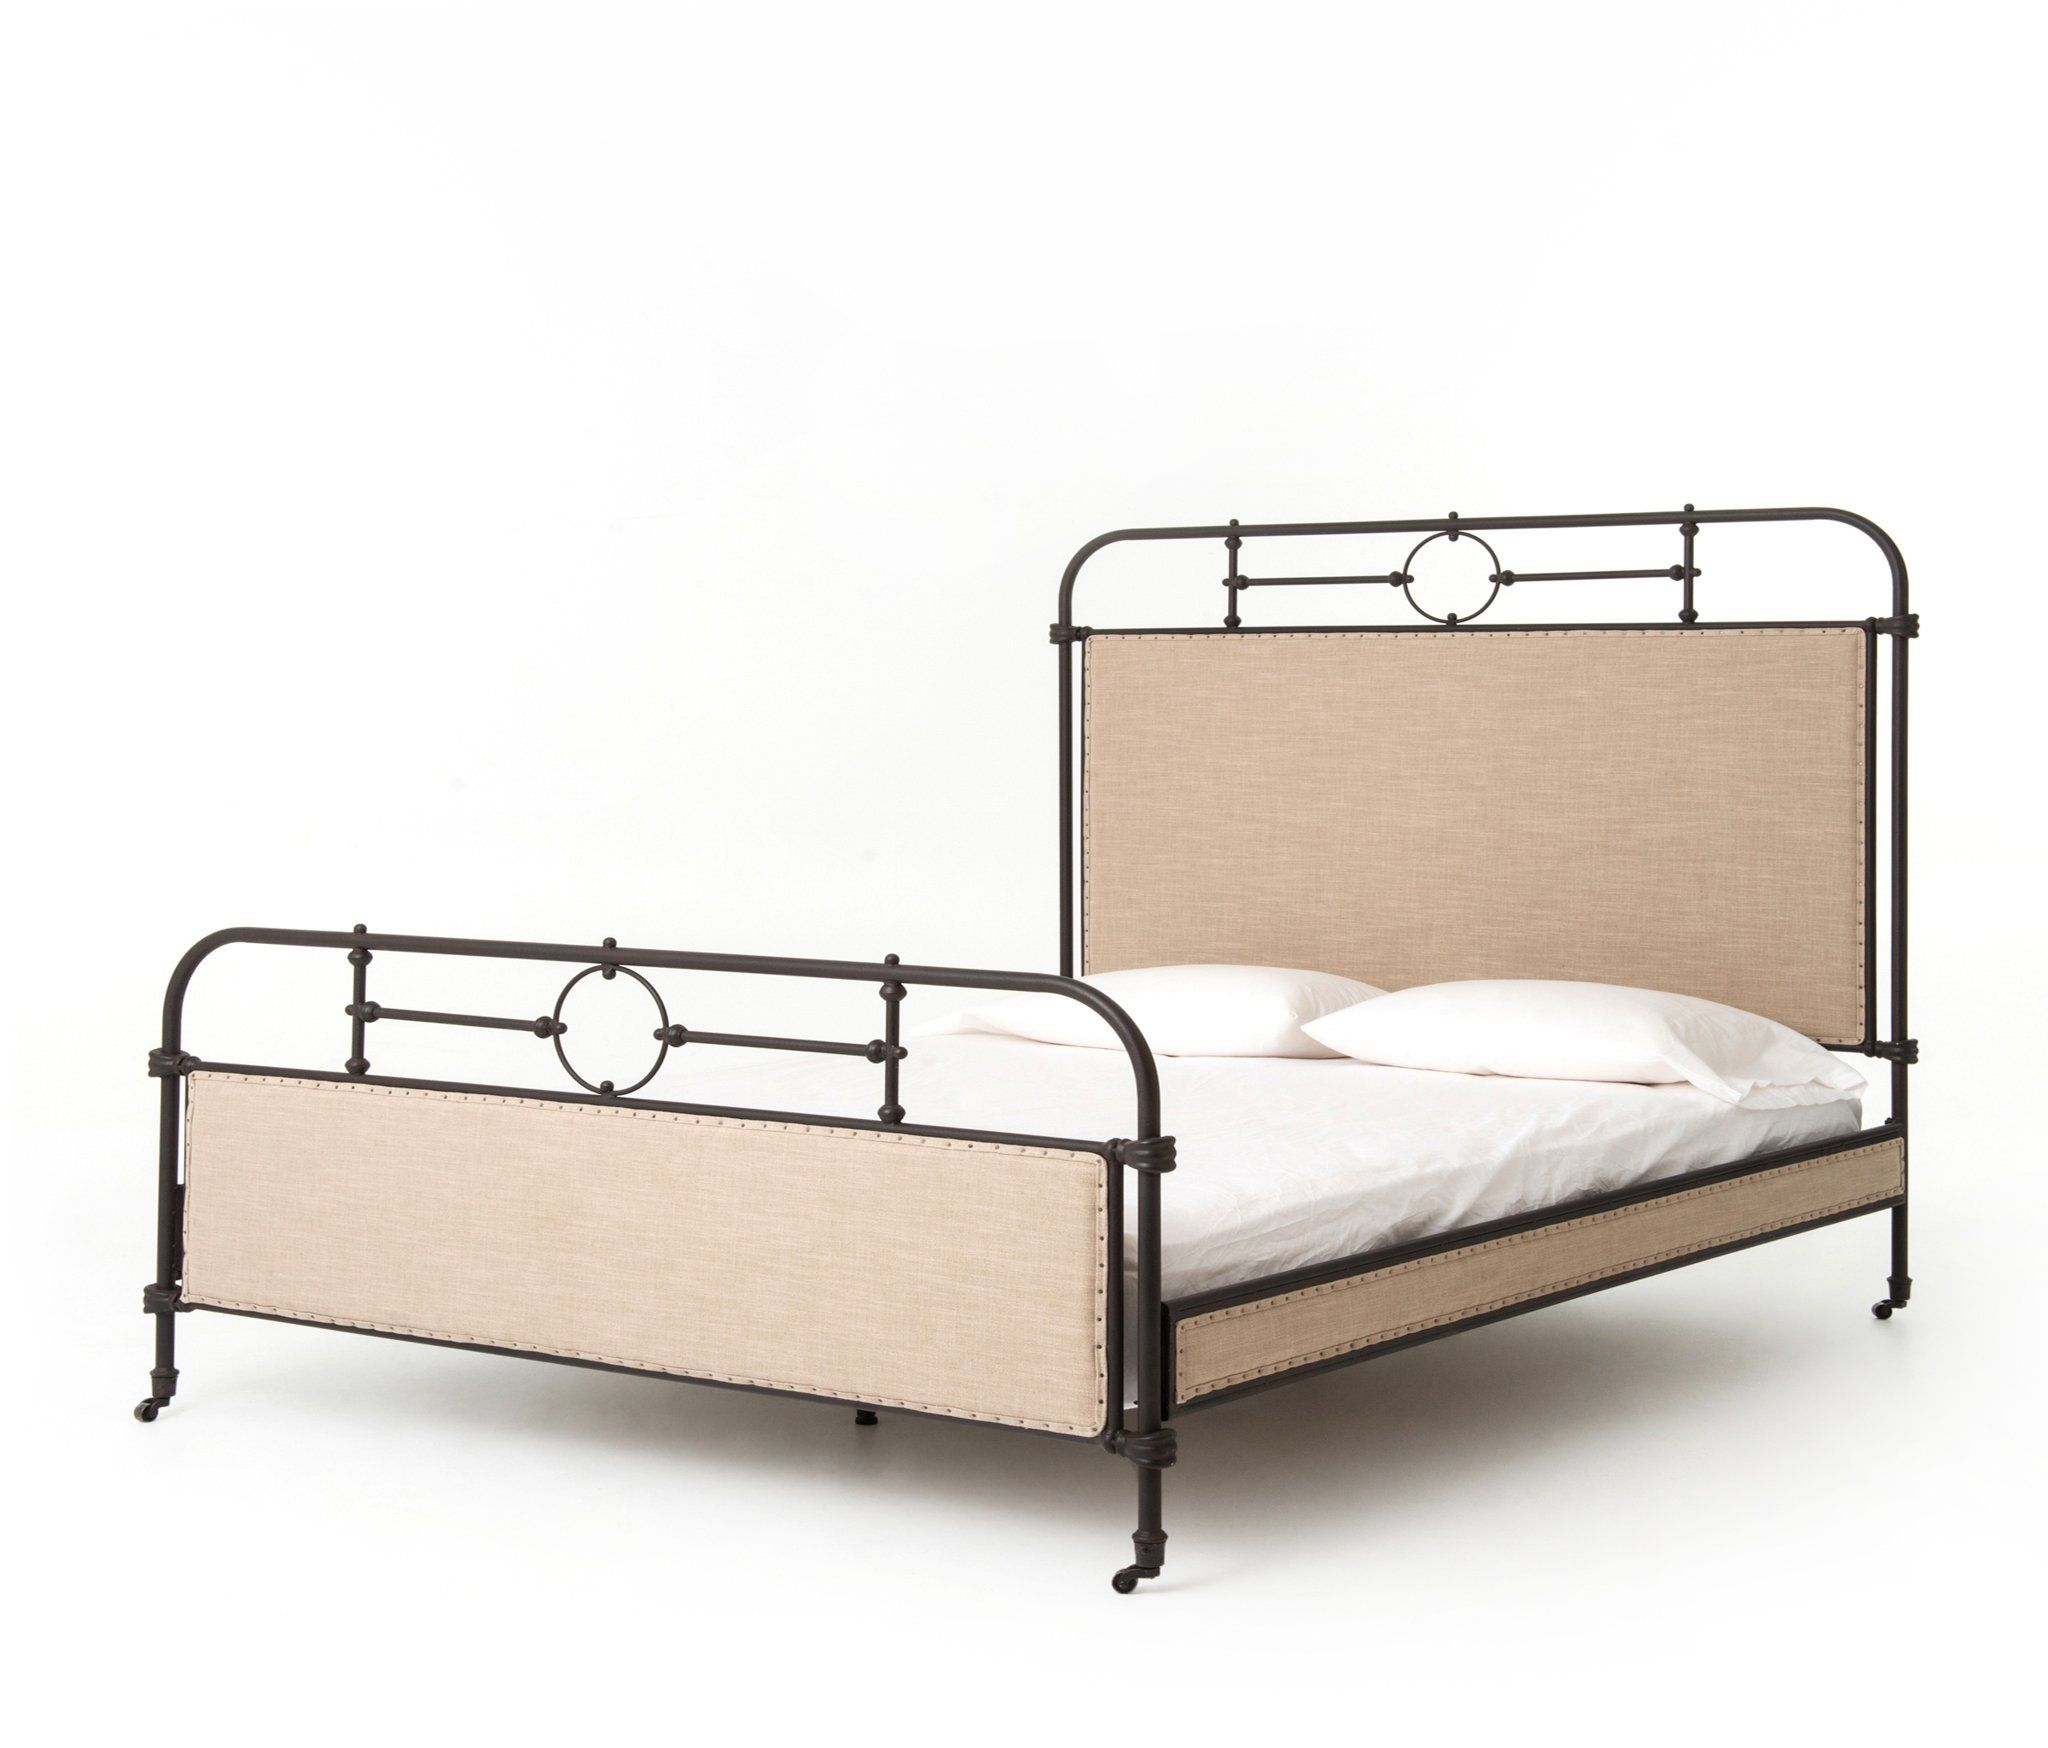 Farmhouse Chic Bed King Iron bed, Metal beds, Bed